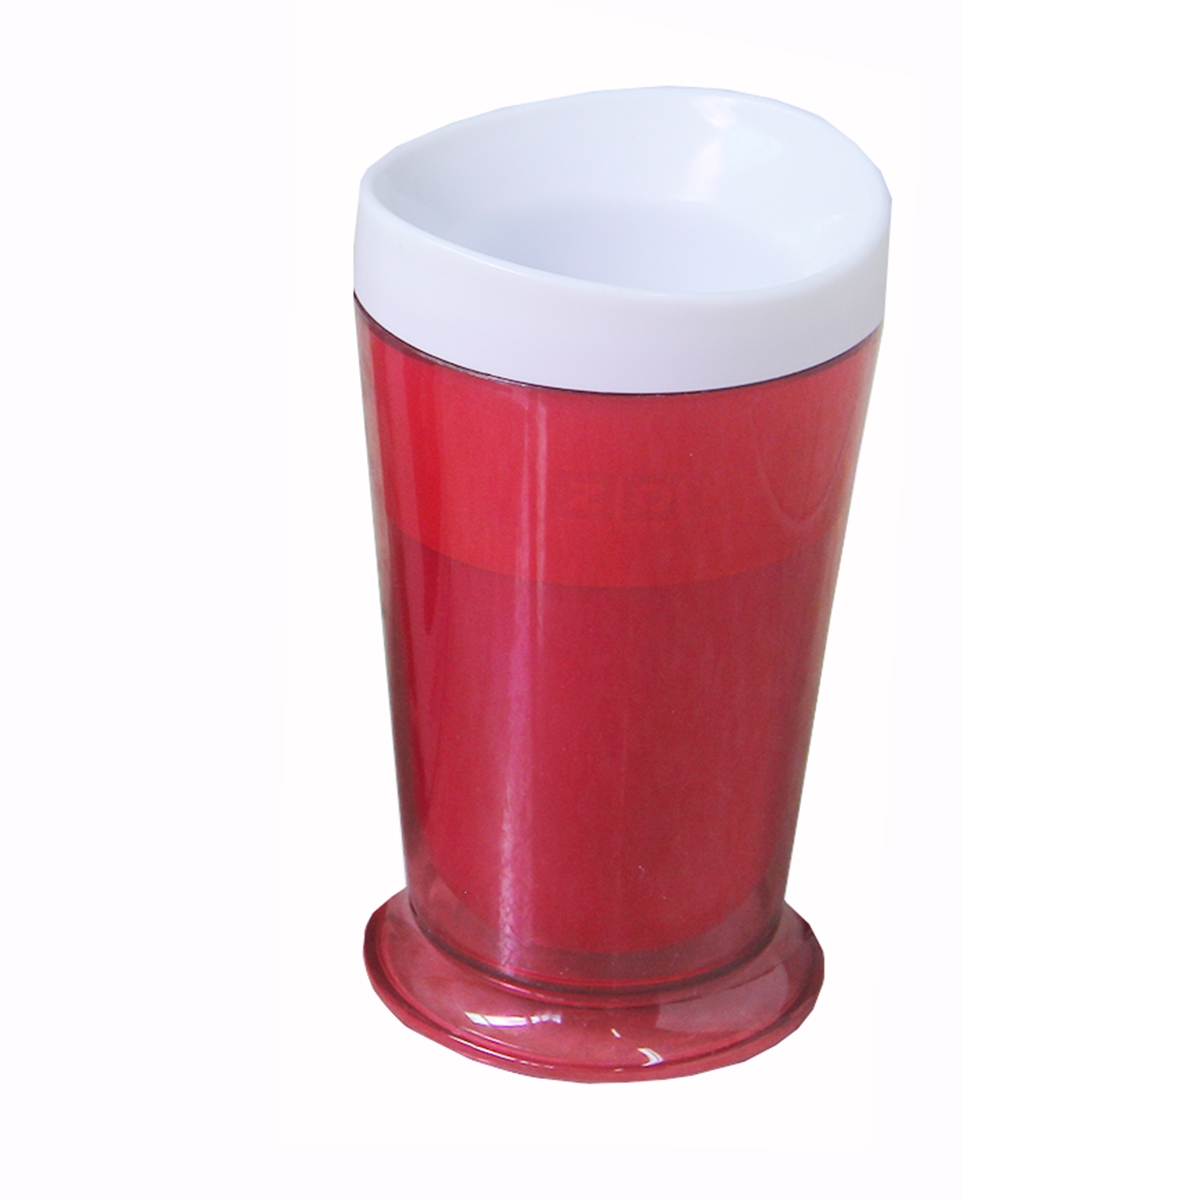 Hot Model Best Price Slush Maker New /Slush Shake Cup